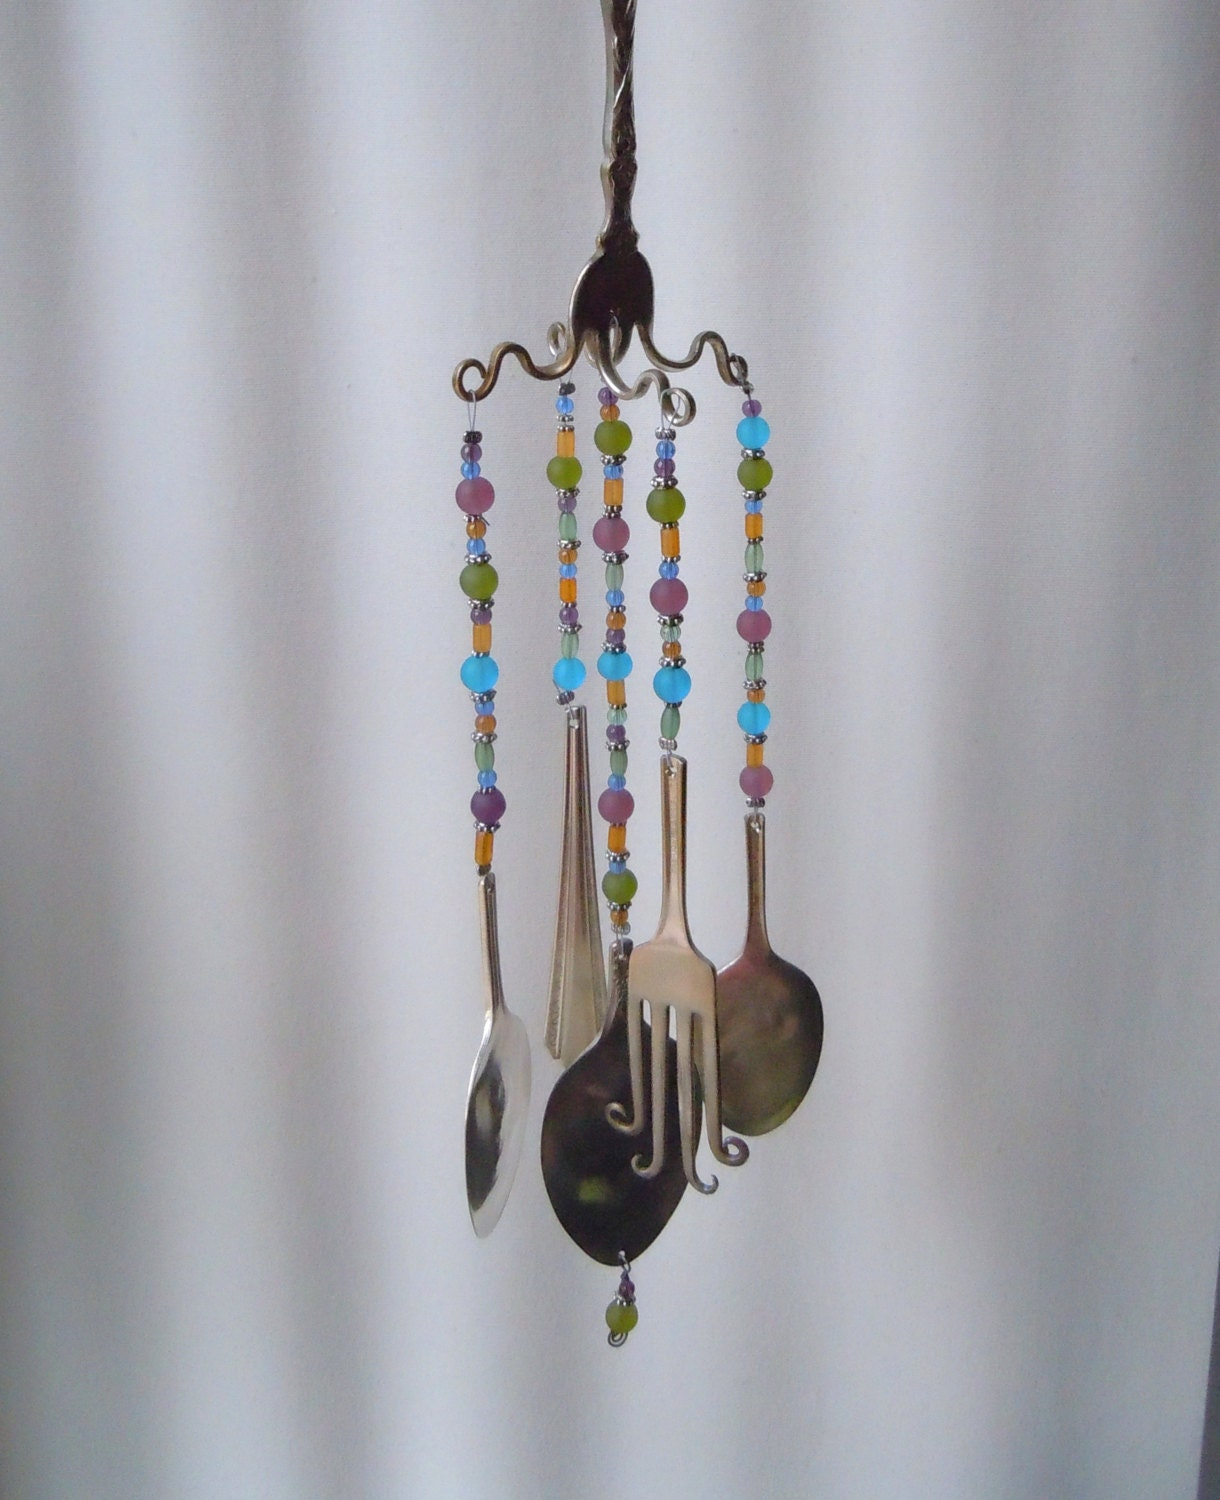 Twisty fork vintage silverware wind chimes for How to make a windchime out of silverware